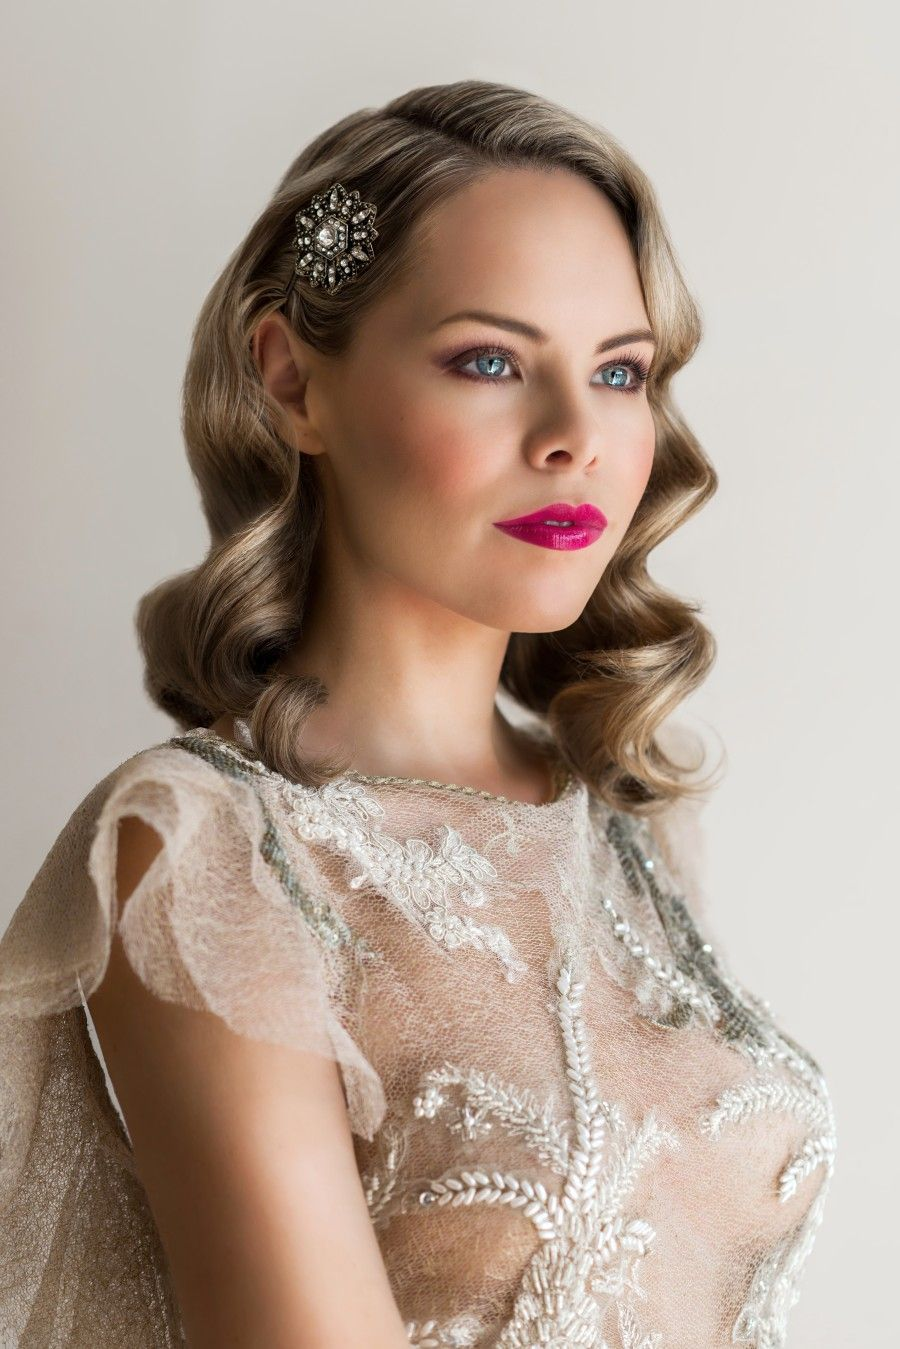 makeup tutorial: how to create a gorgeous 1040's vintage bridal